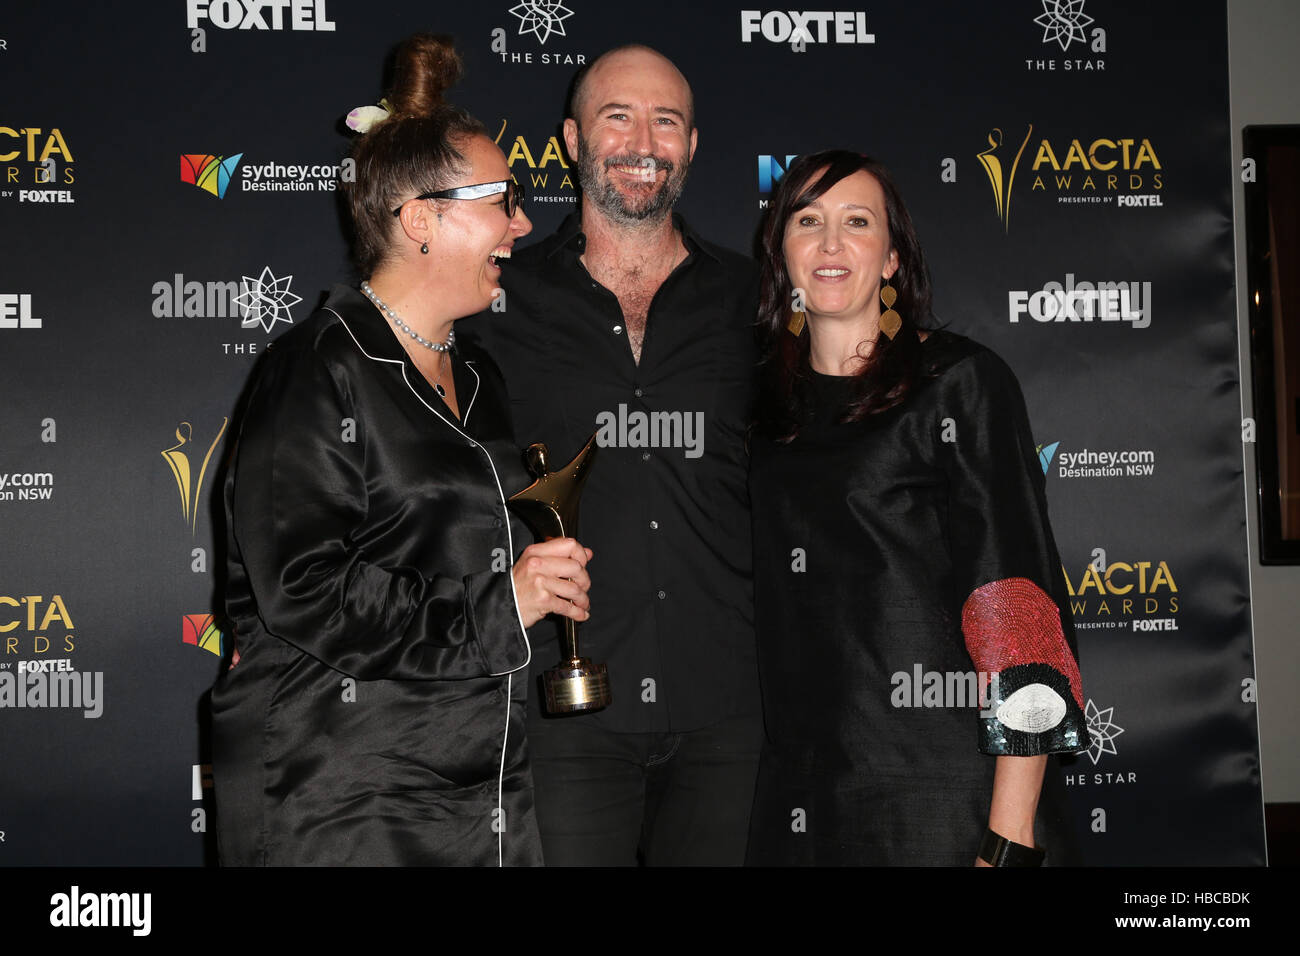 Sydney, Australia. 5 December 2016. Pictured: Del Kathryn Barton, Brendan Fletcher and Angie Fielder pose win the - Stock Image